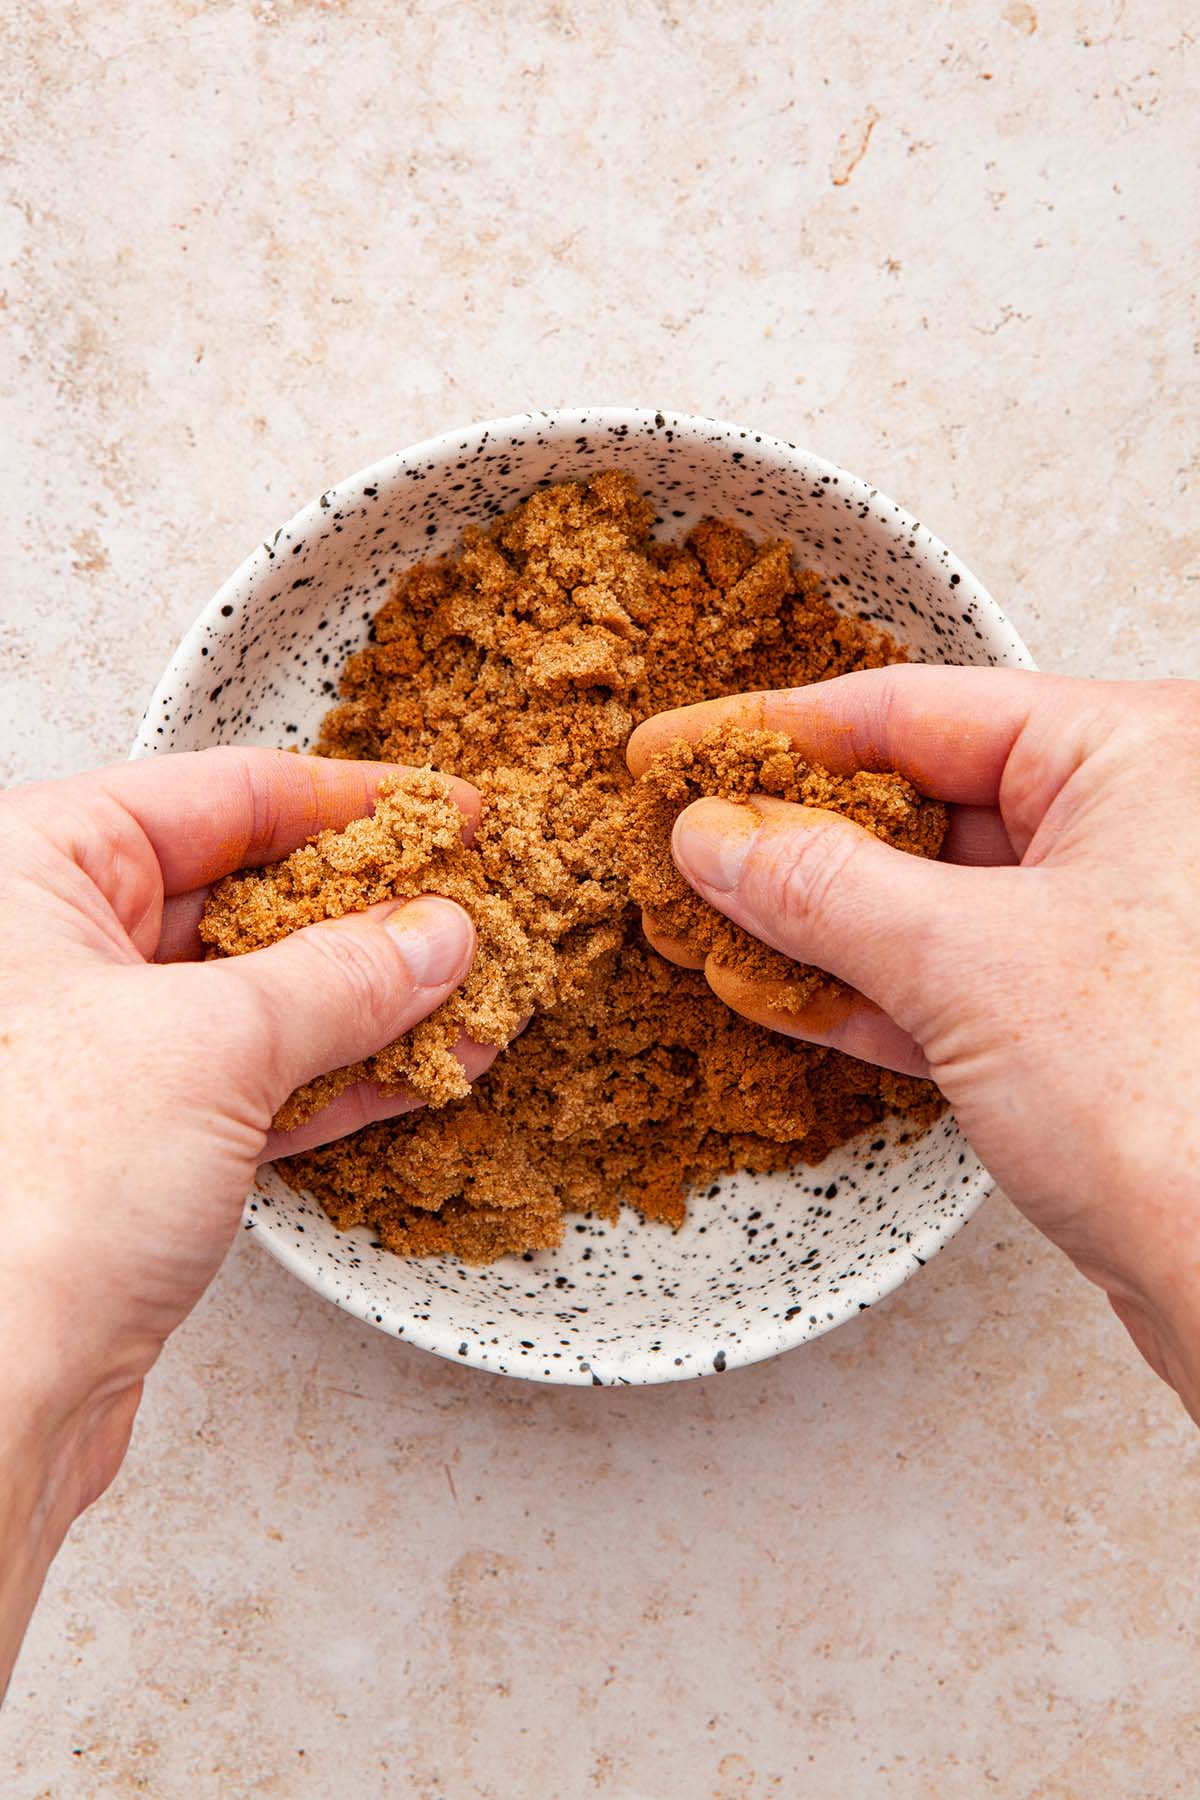 Hands smooshing brown sugar and cinnamon together in a white speckled bowl.